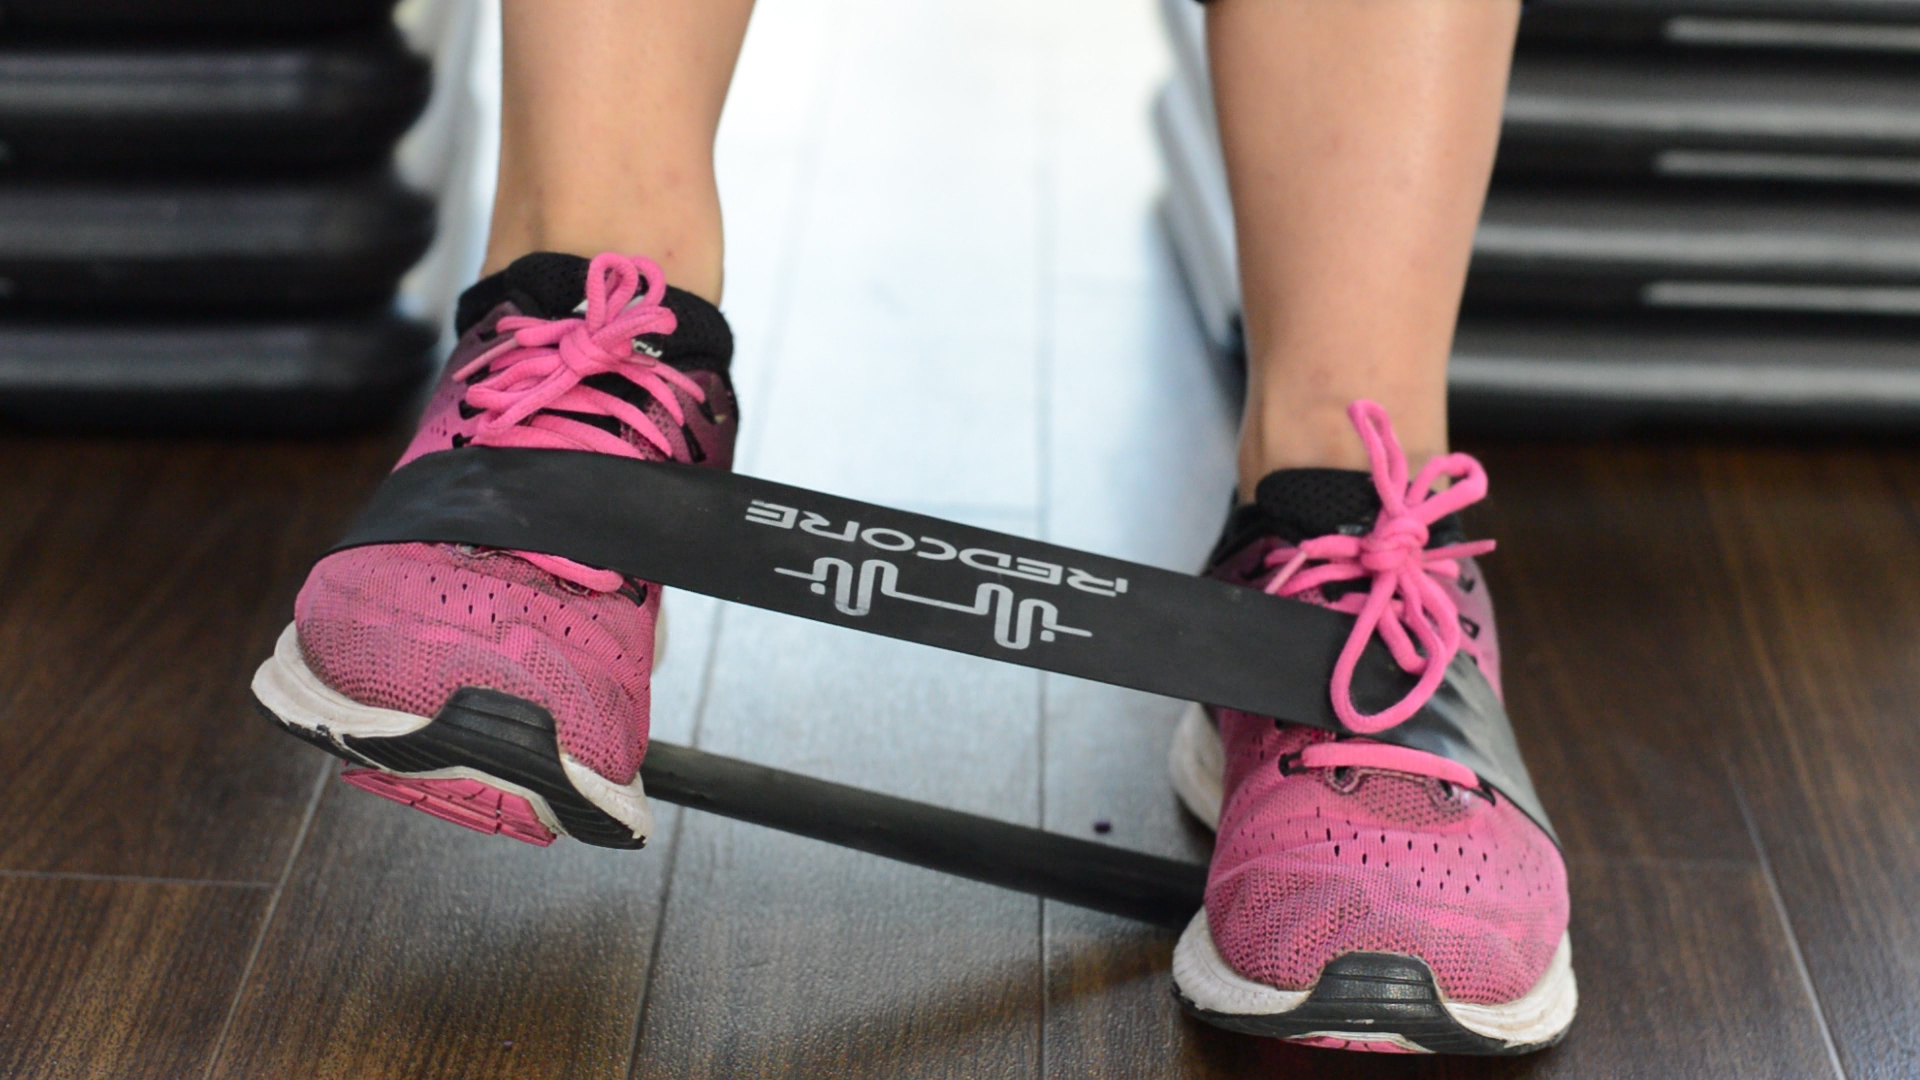 foot and ankle strengthening for plantar fasciitis